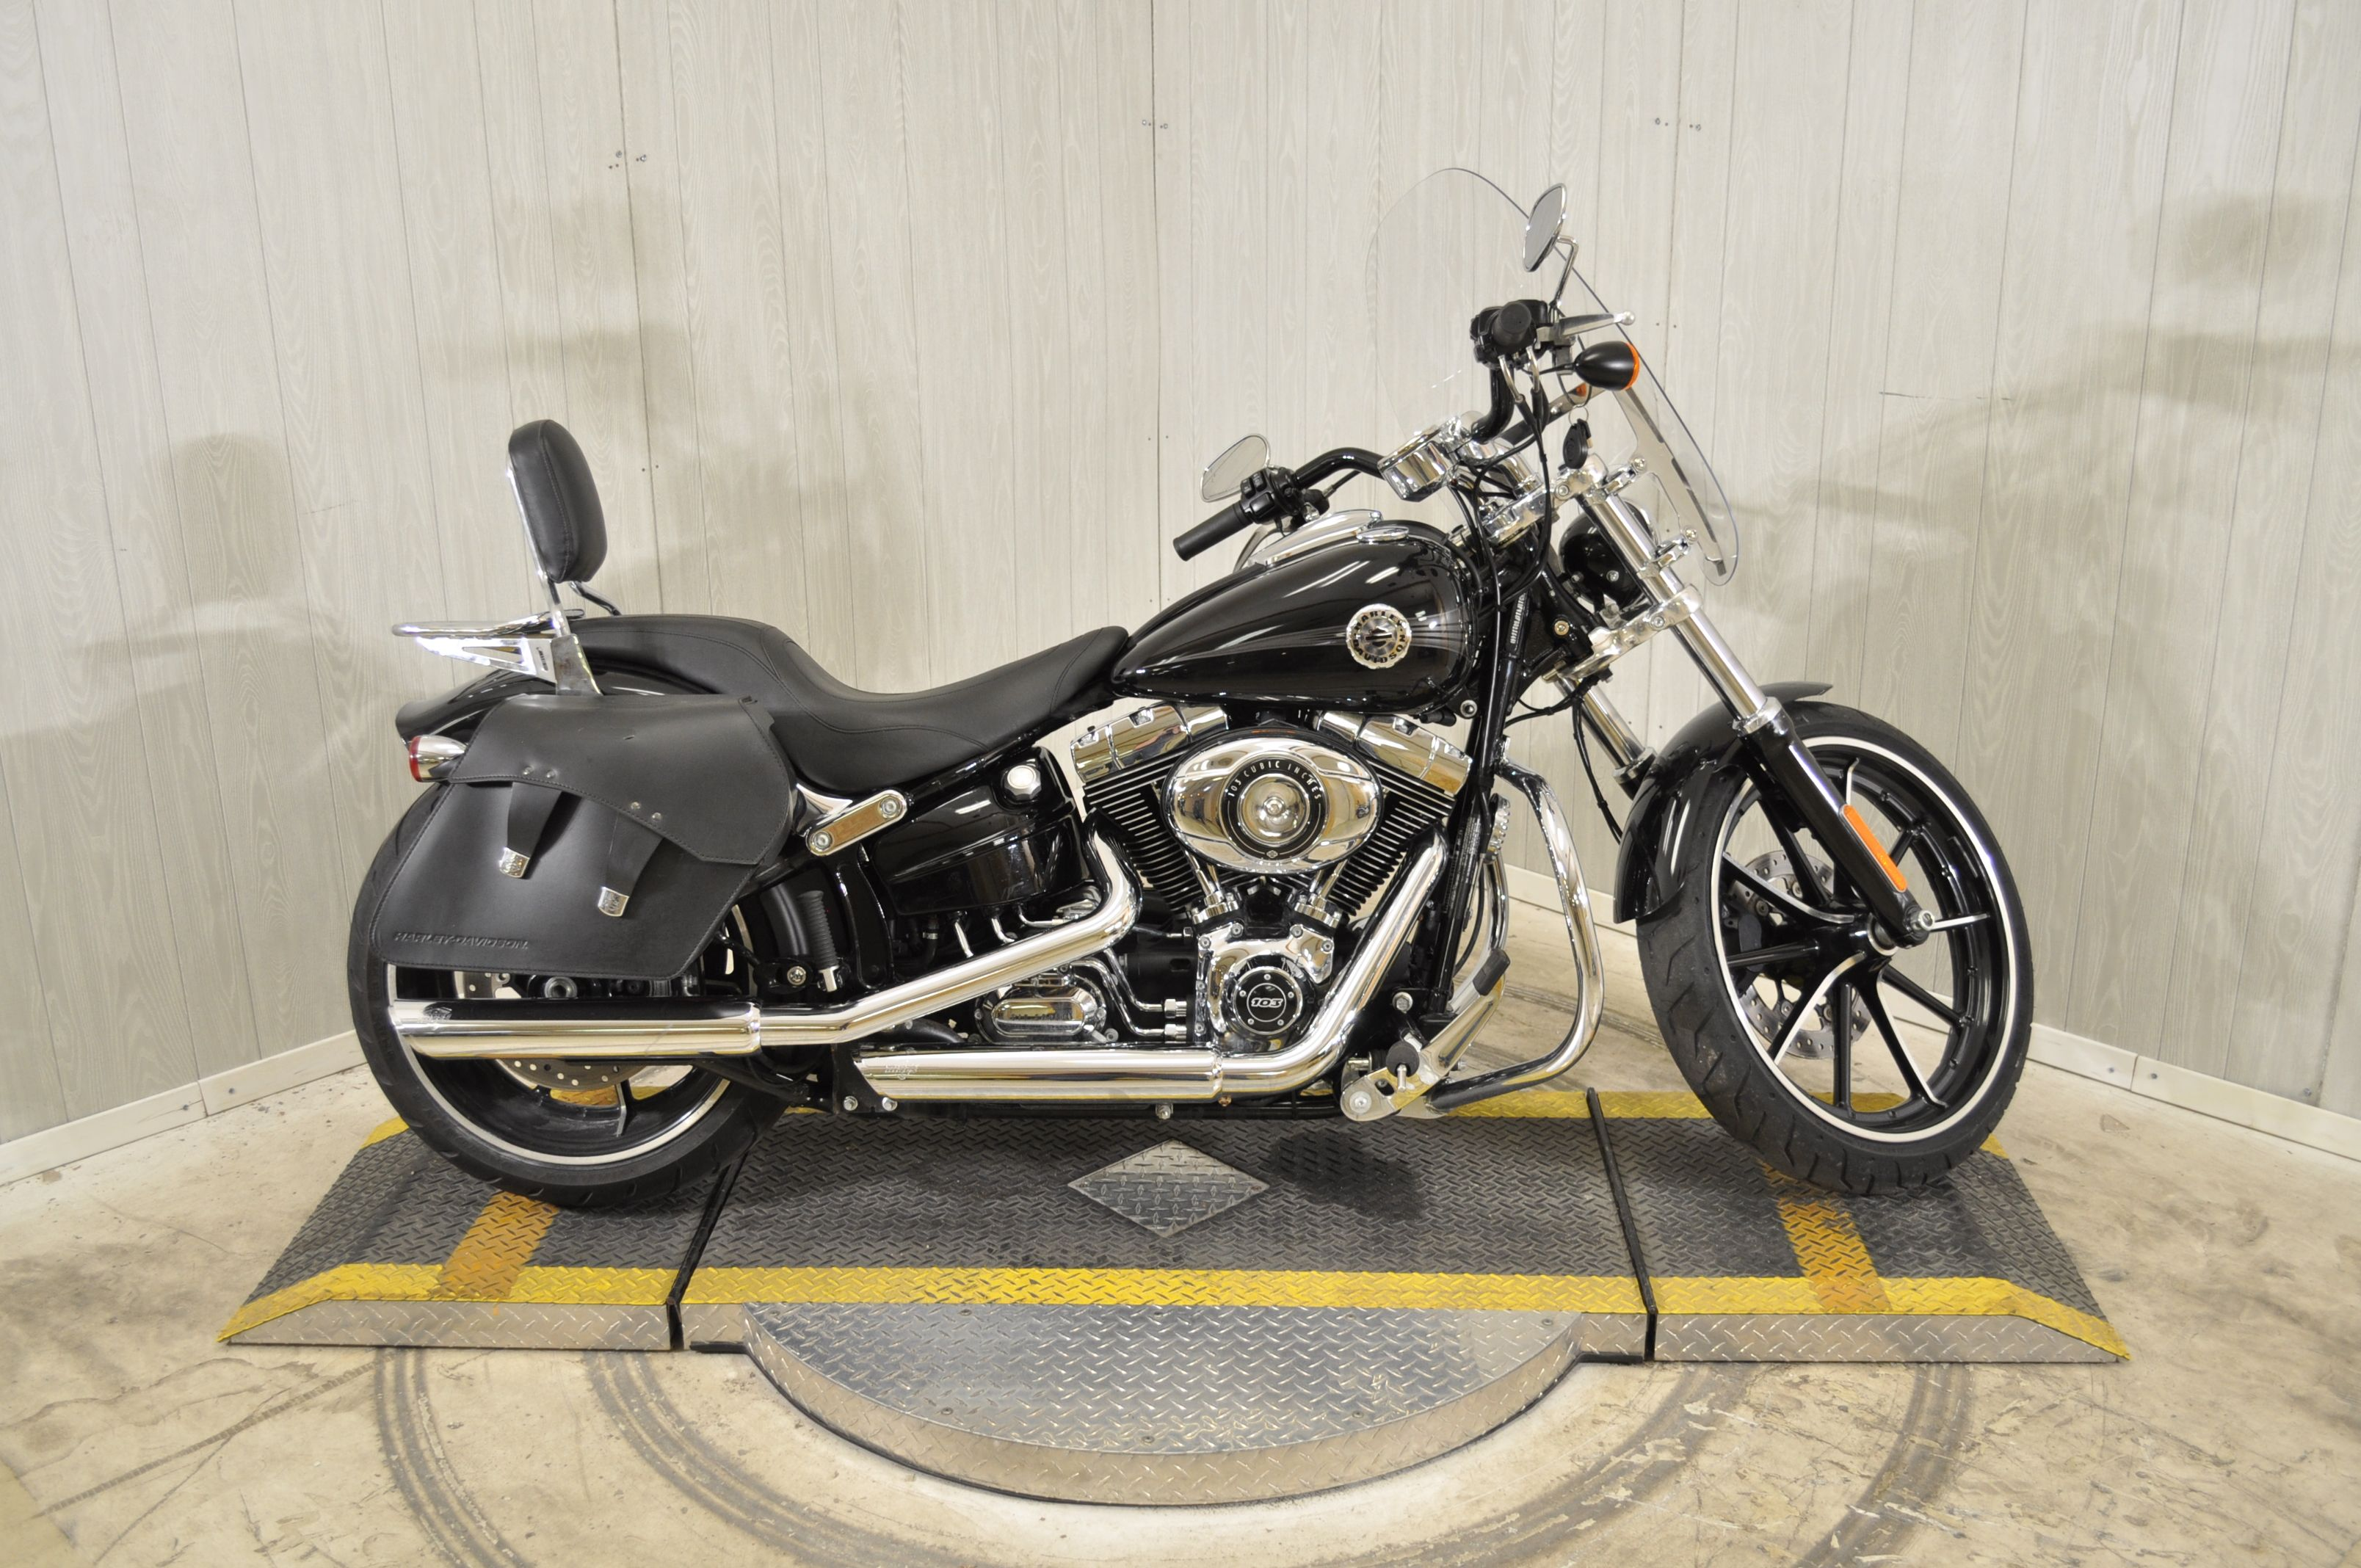 Pre-Owned 2015 Harley-Davidson Breakout FXSB